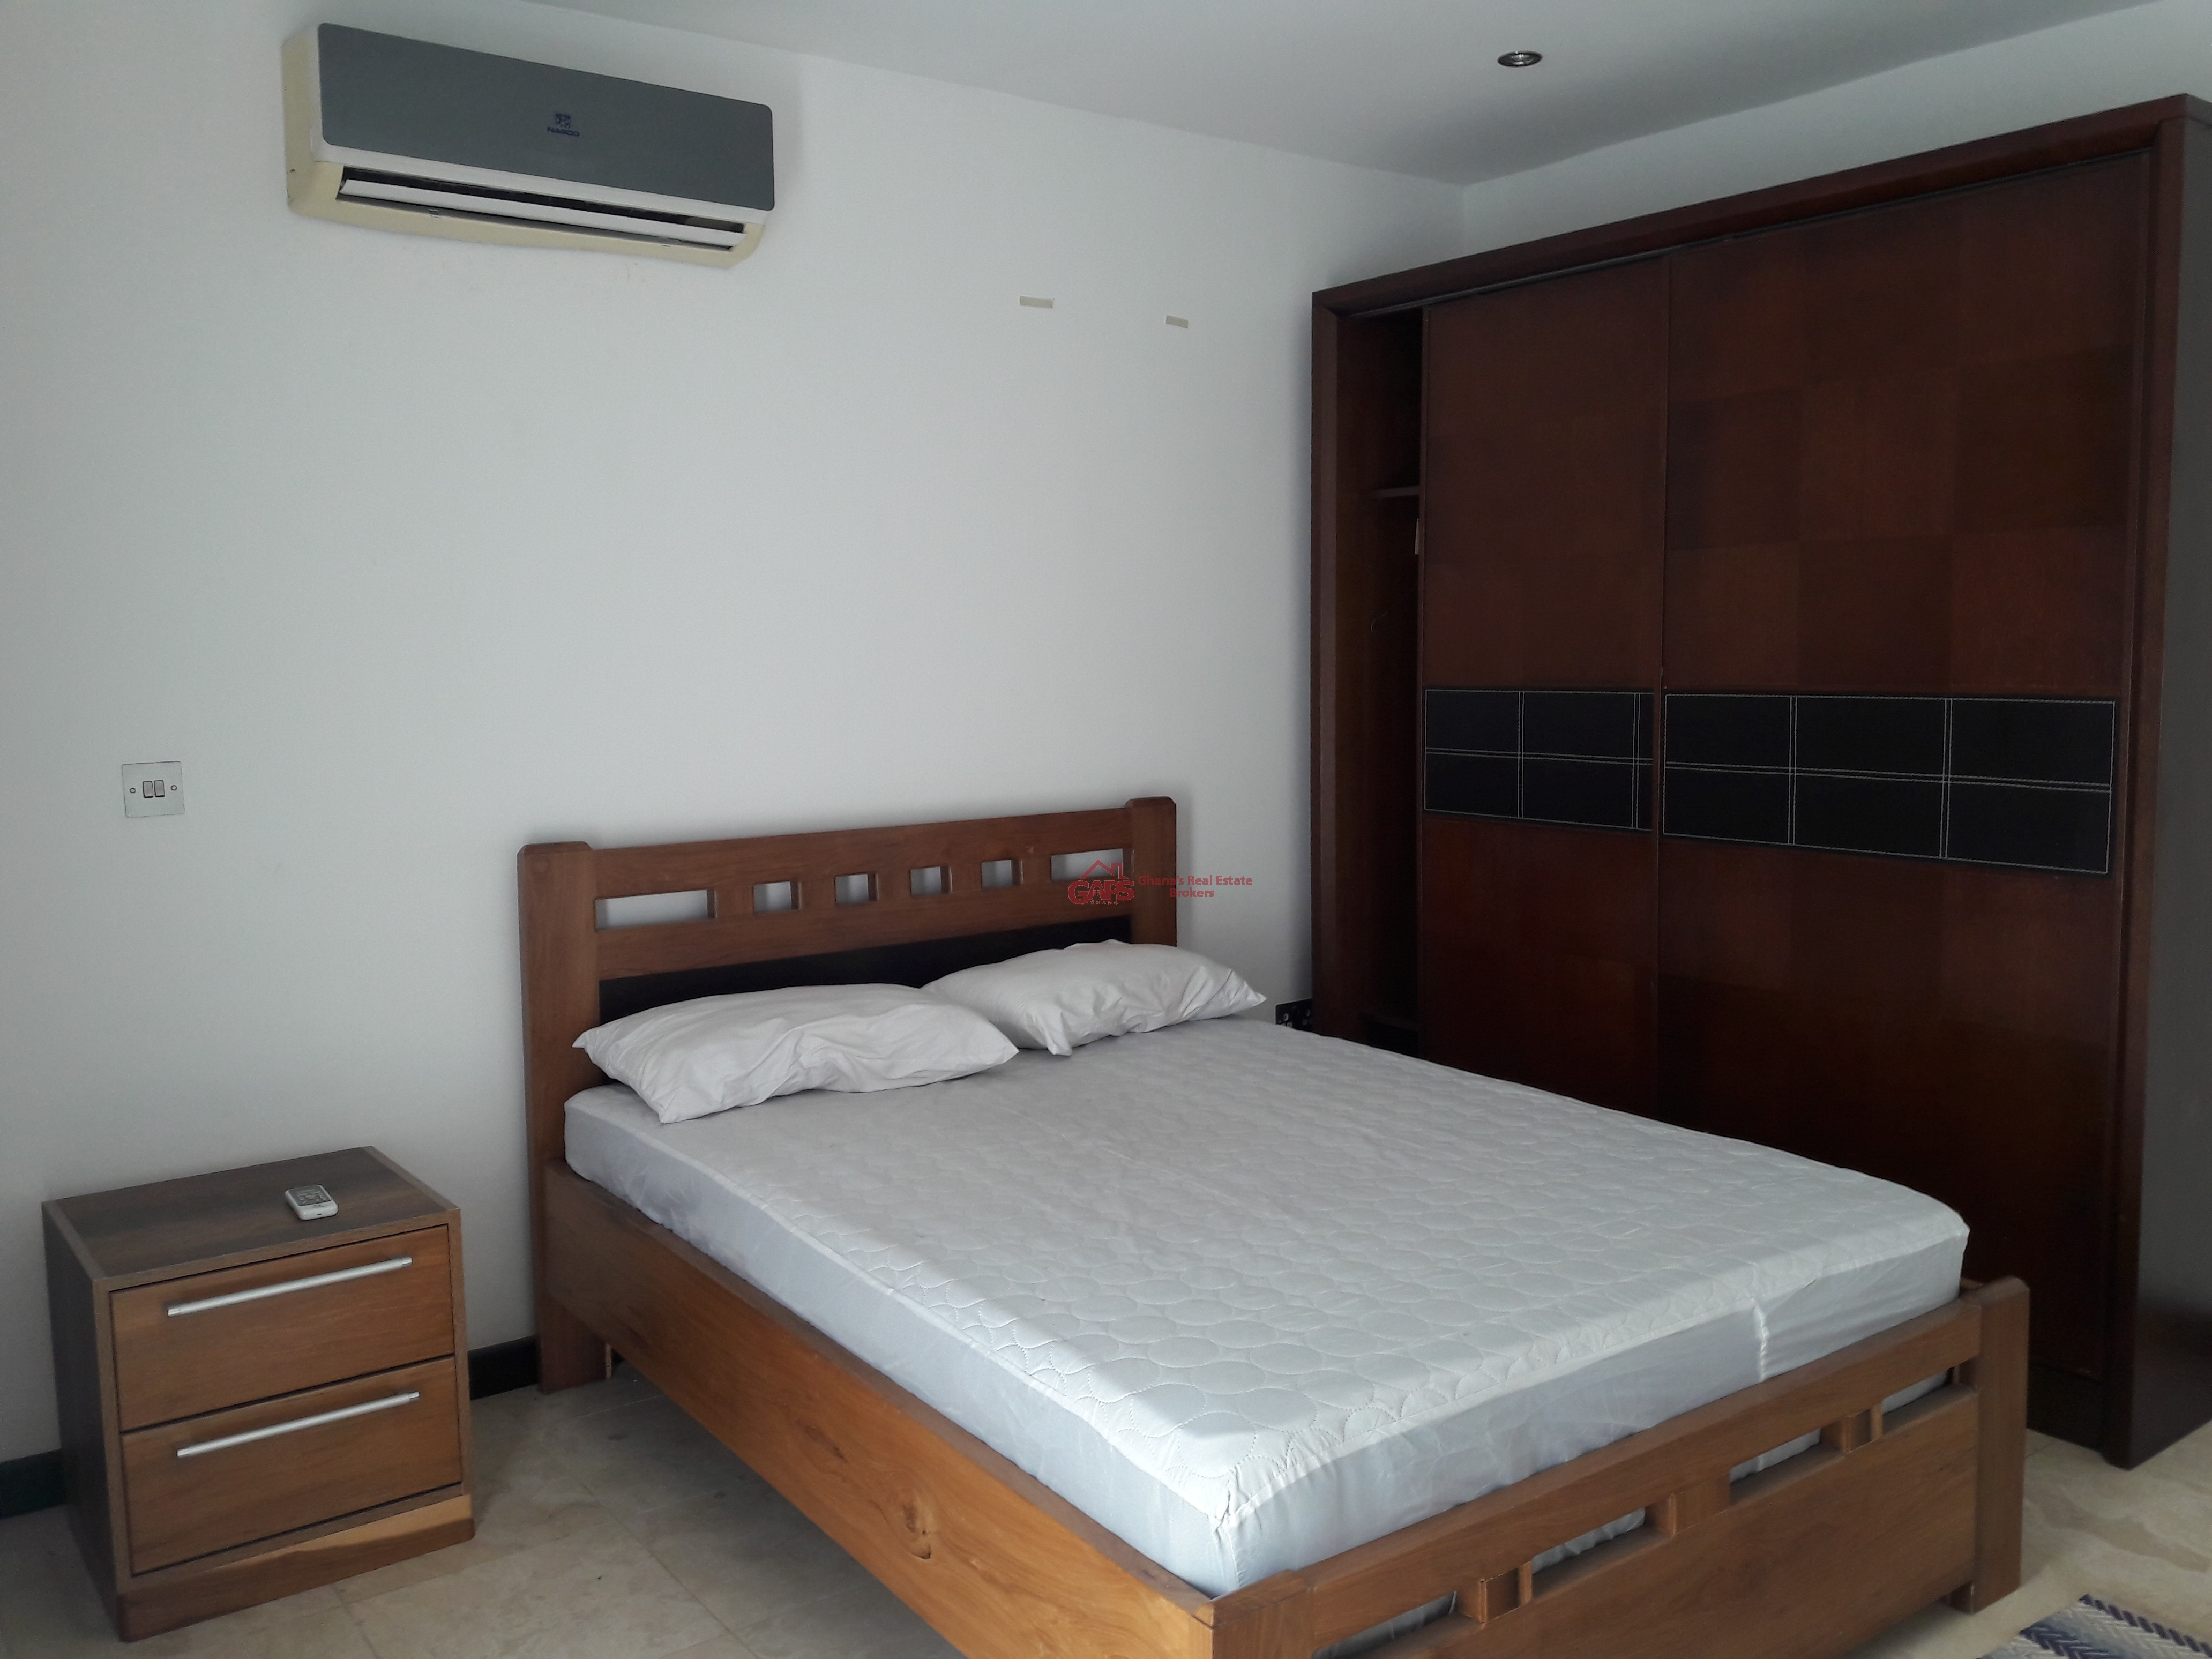 2 Bedroom Apartments Available For Rent In Ridge Gaps Ghana Real Estate Brokers